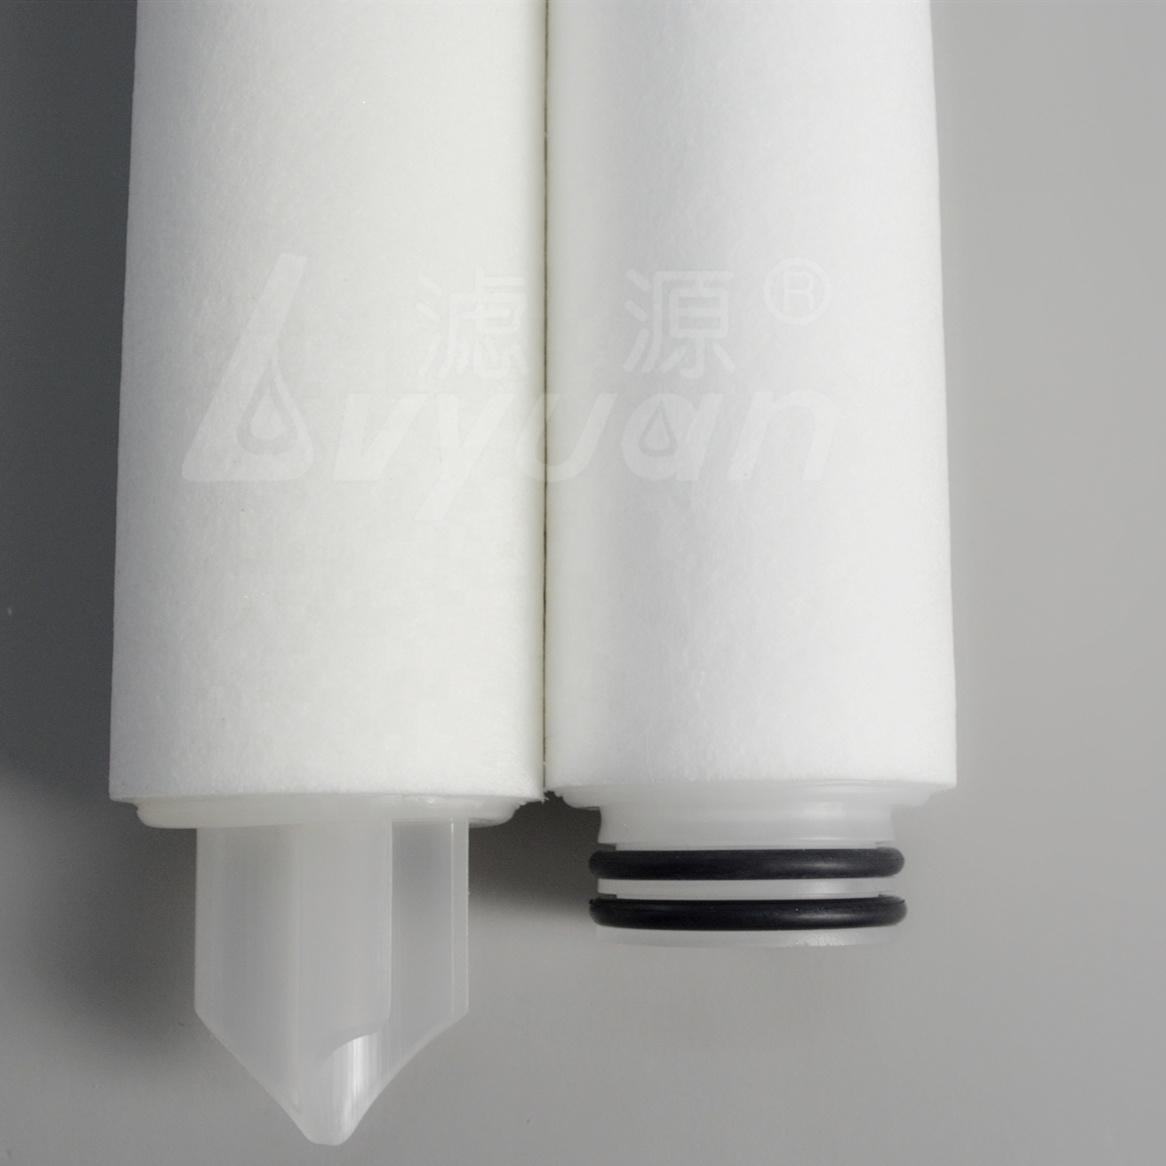 10 20 30 40 inch pp sediment melt blown filter /water cartridge for industrial filtration